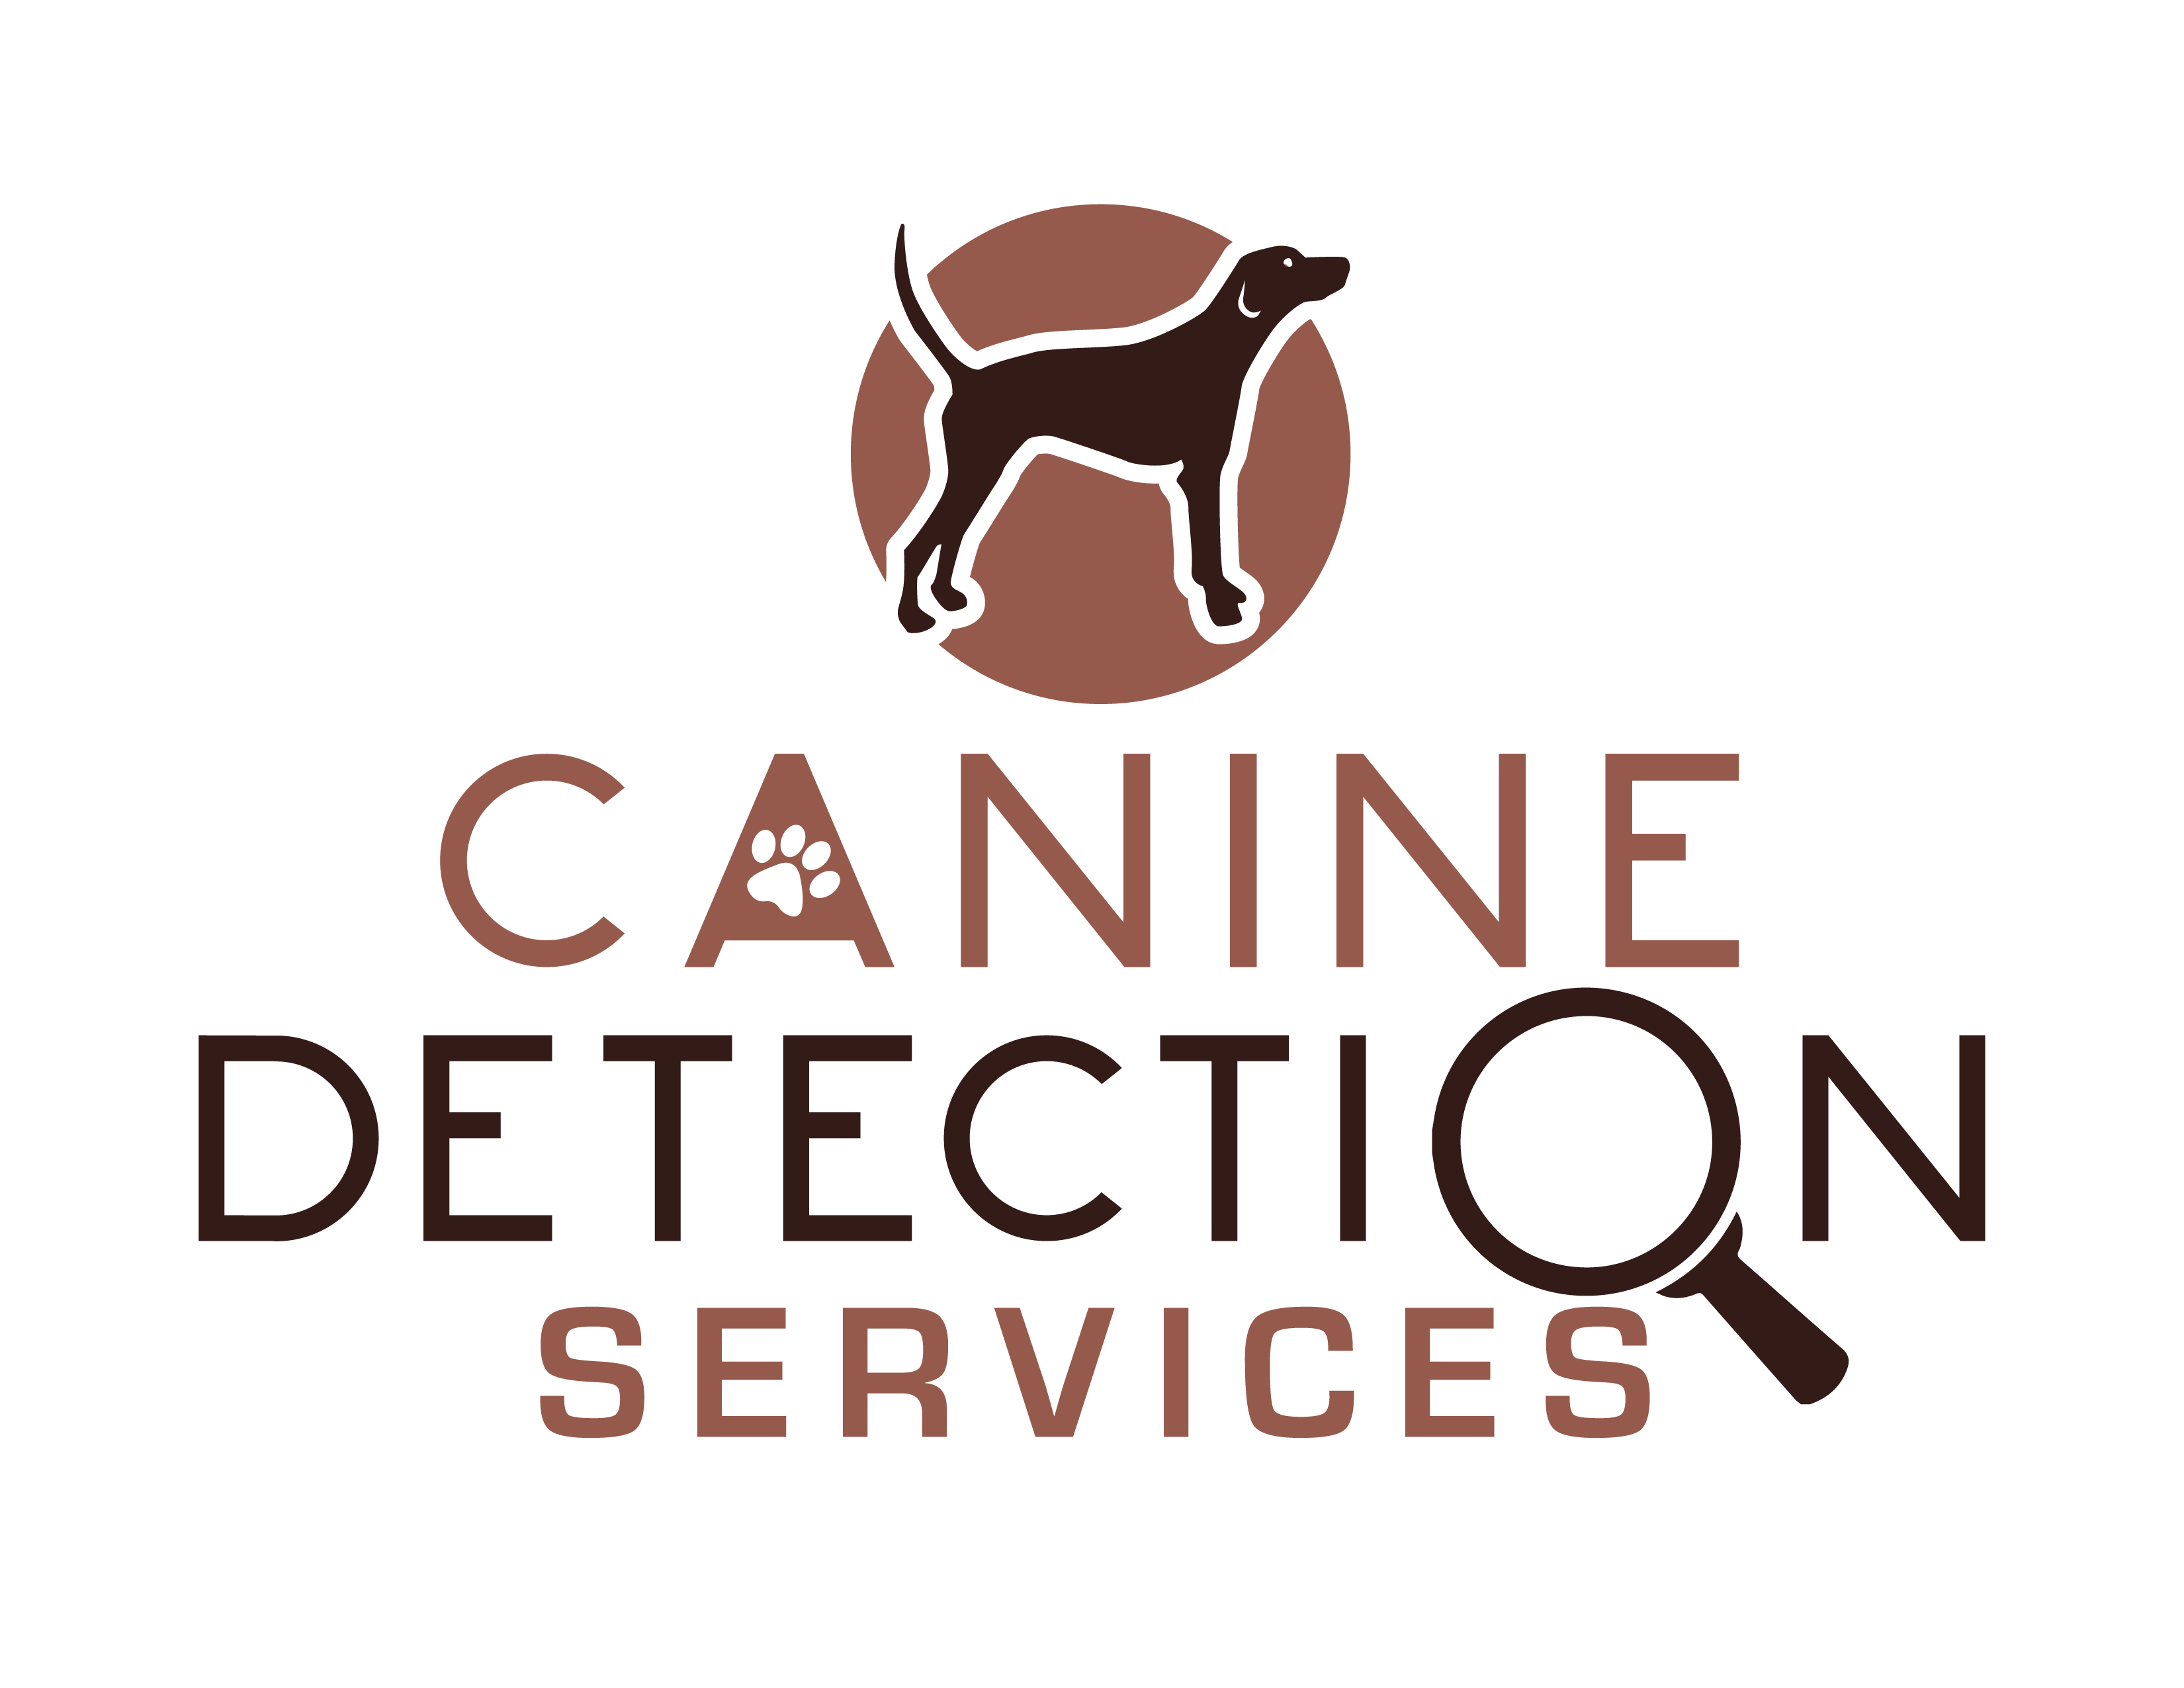 Canine Detection Services